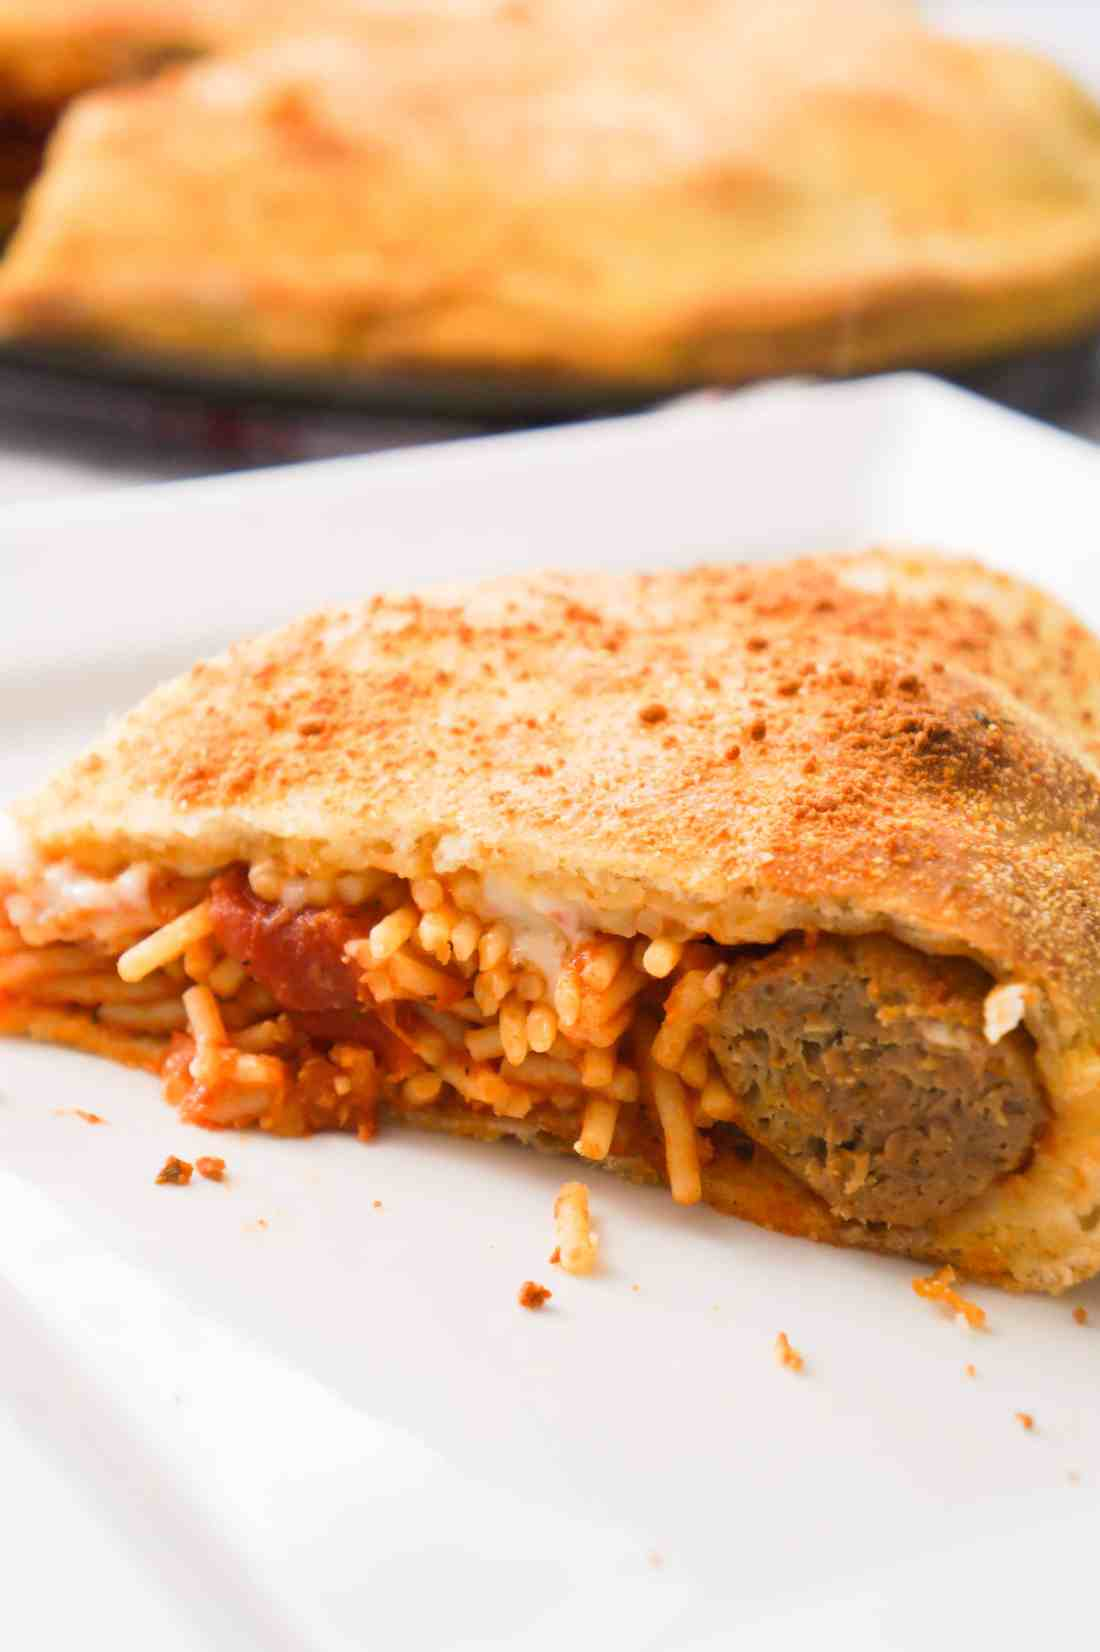 Plate with spaghetti and meatballs pizza slice